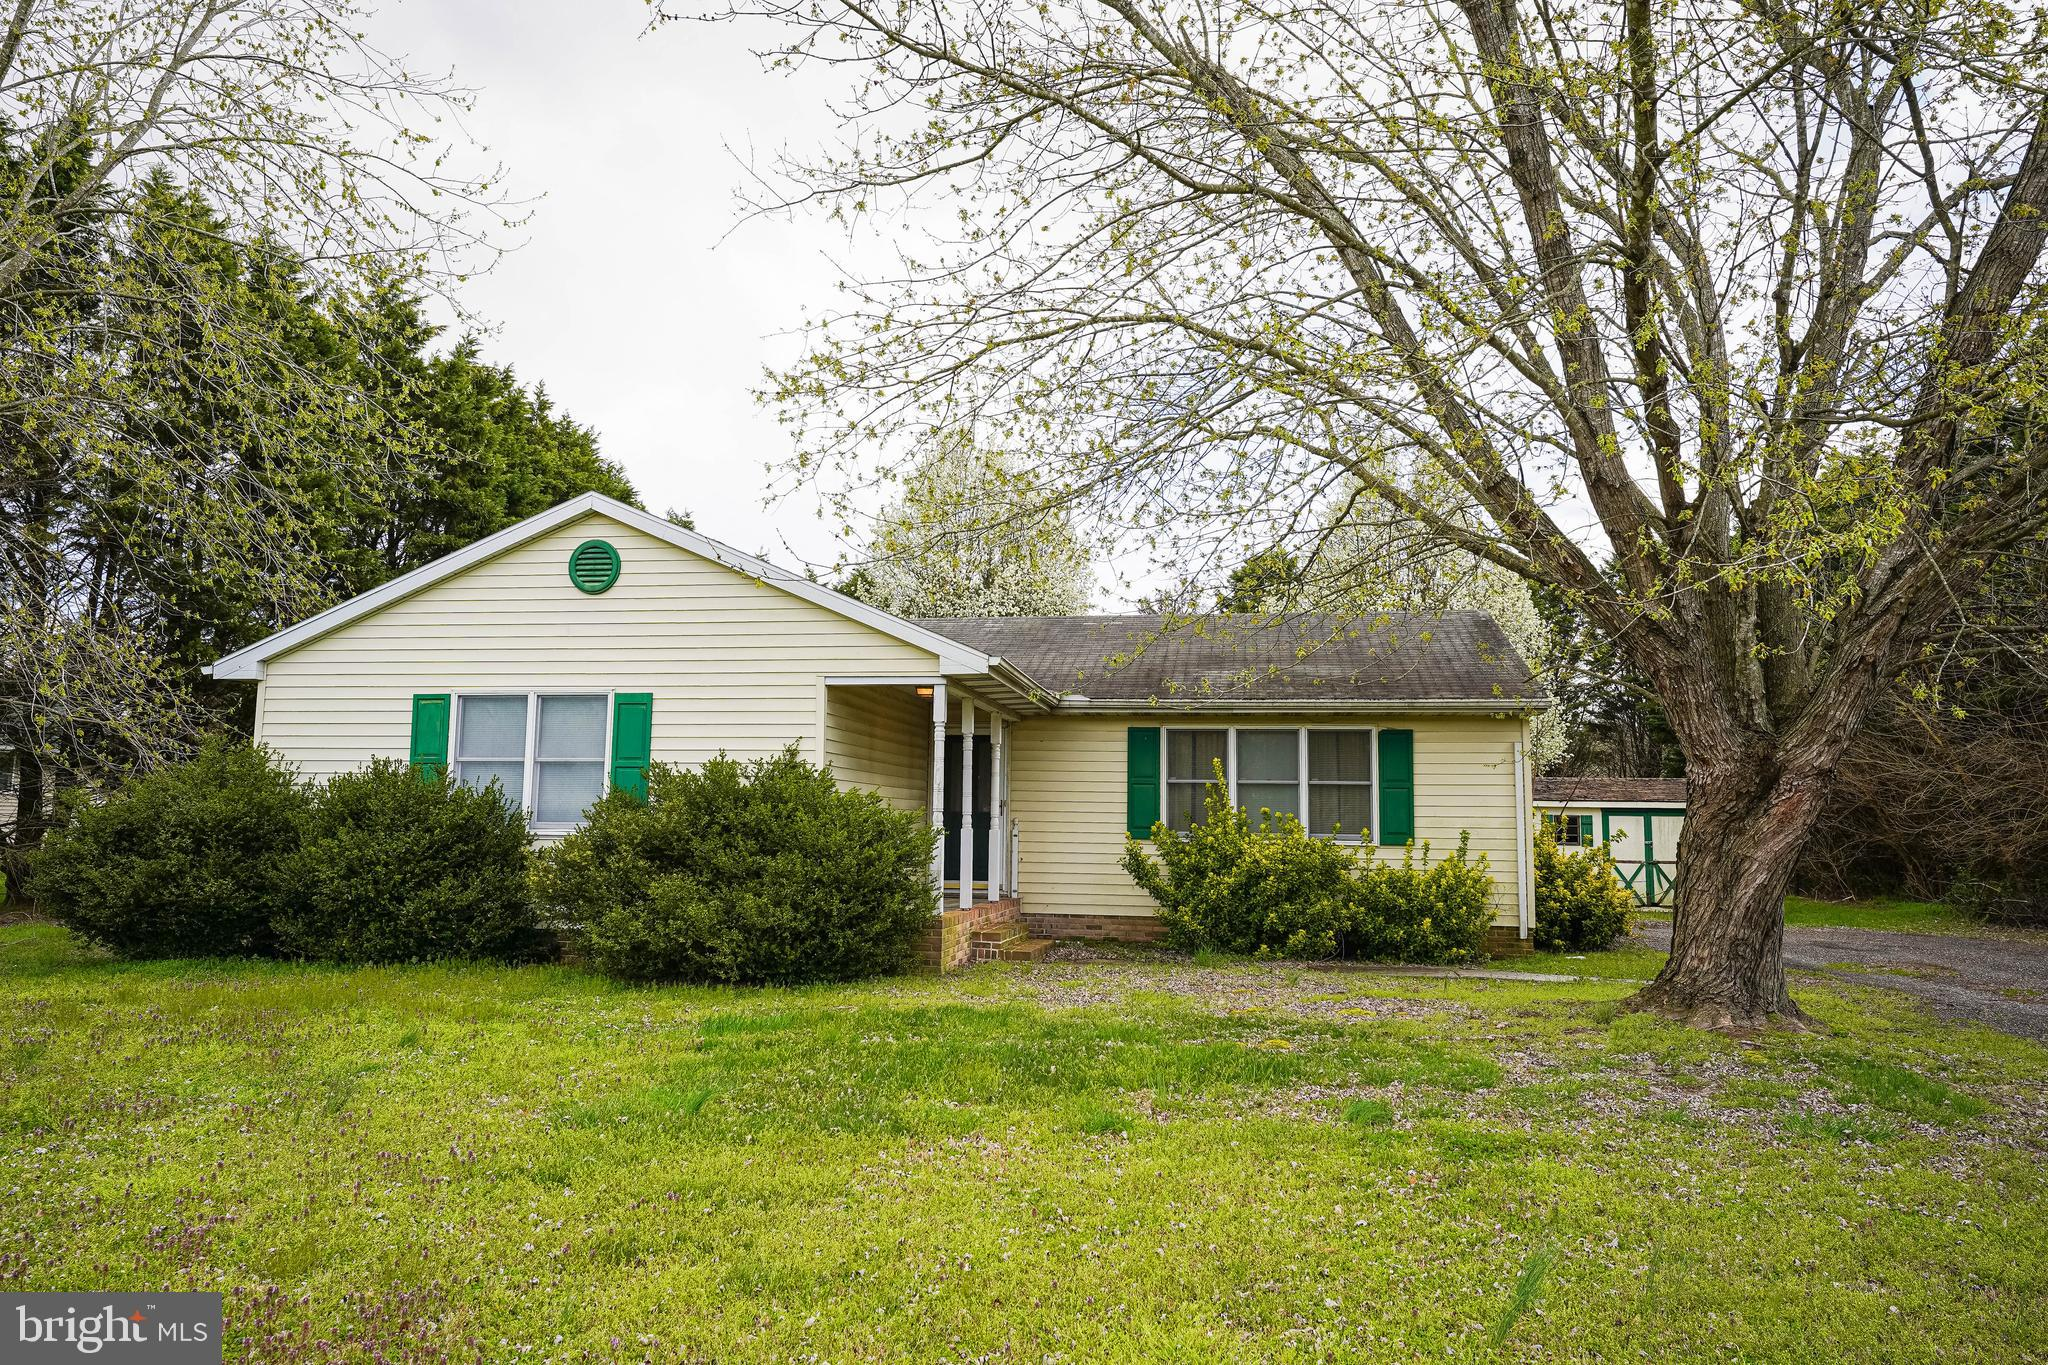 Don't miss this adorable and affordable 3BR/2BA rancher on a nice-sized lot. Quick minute to parks,